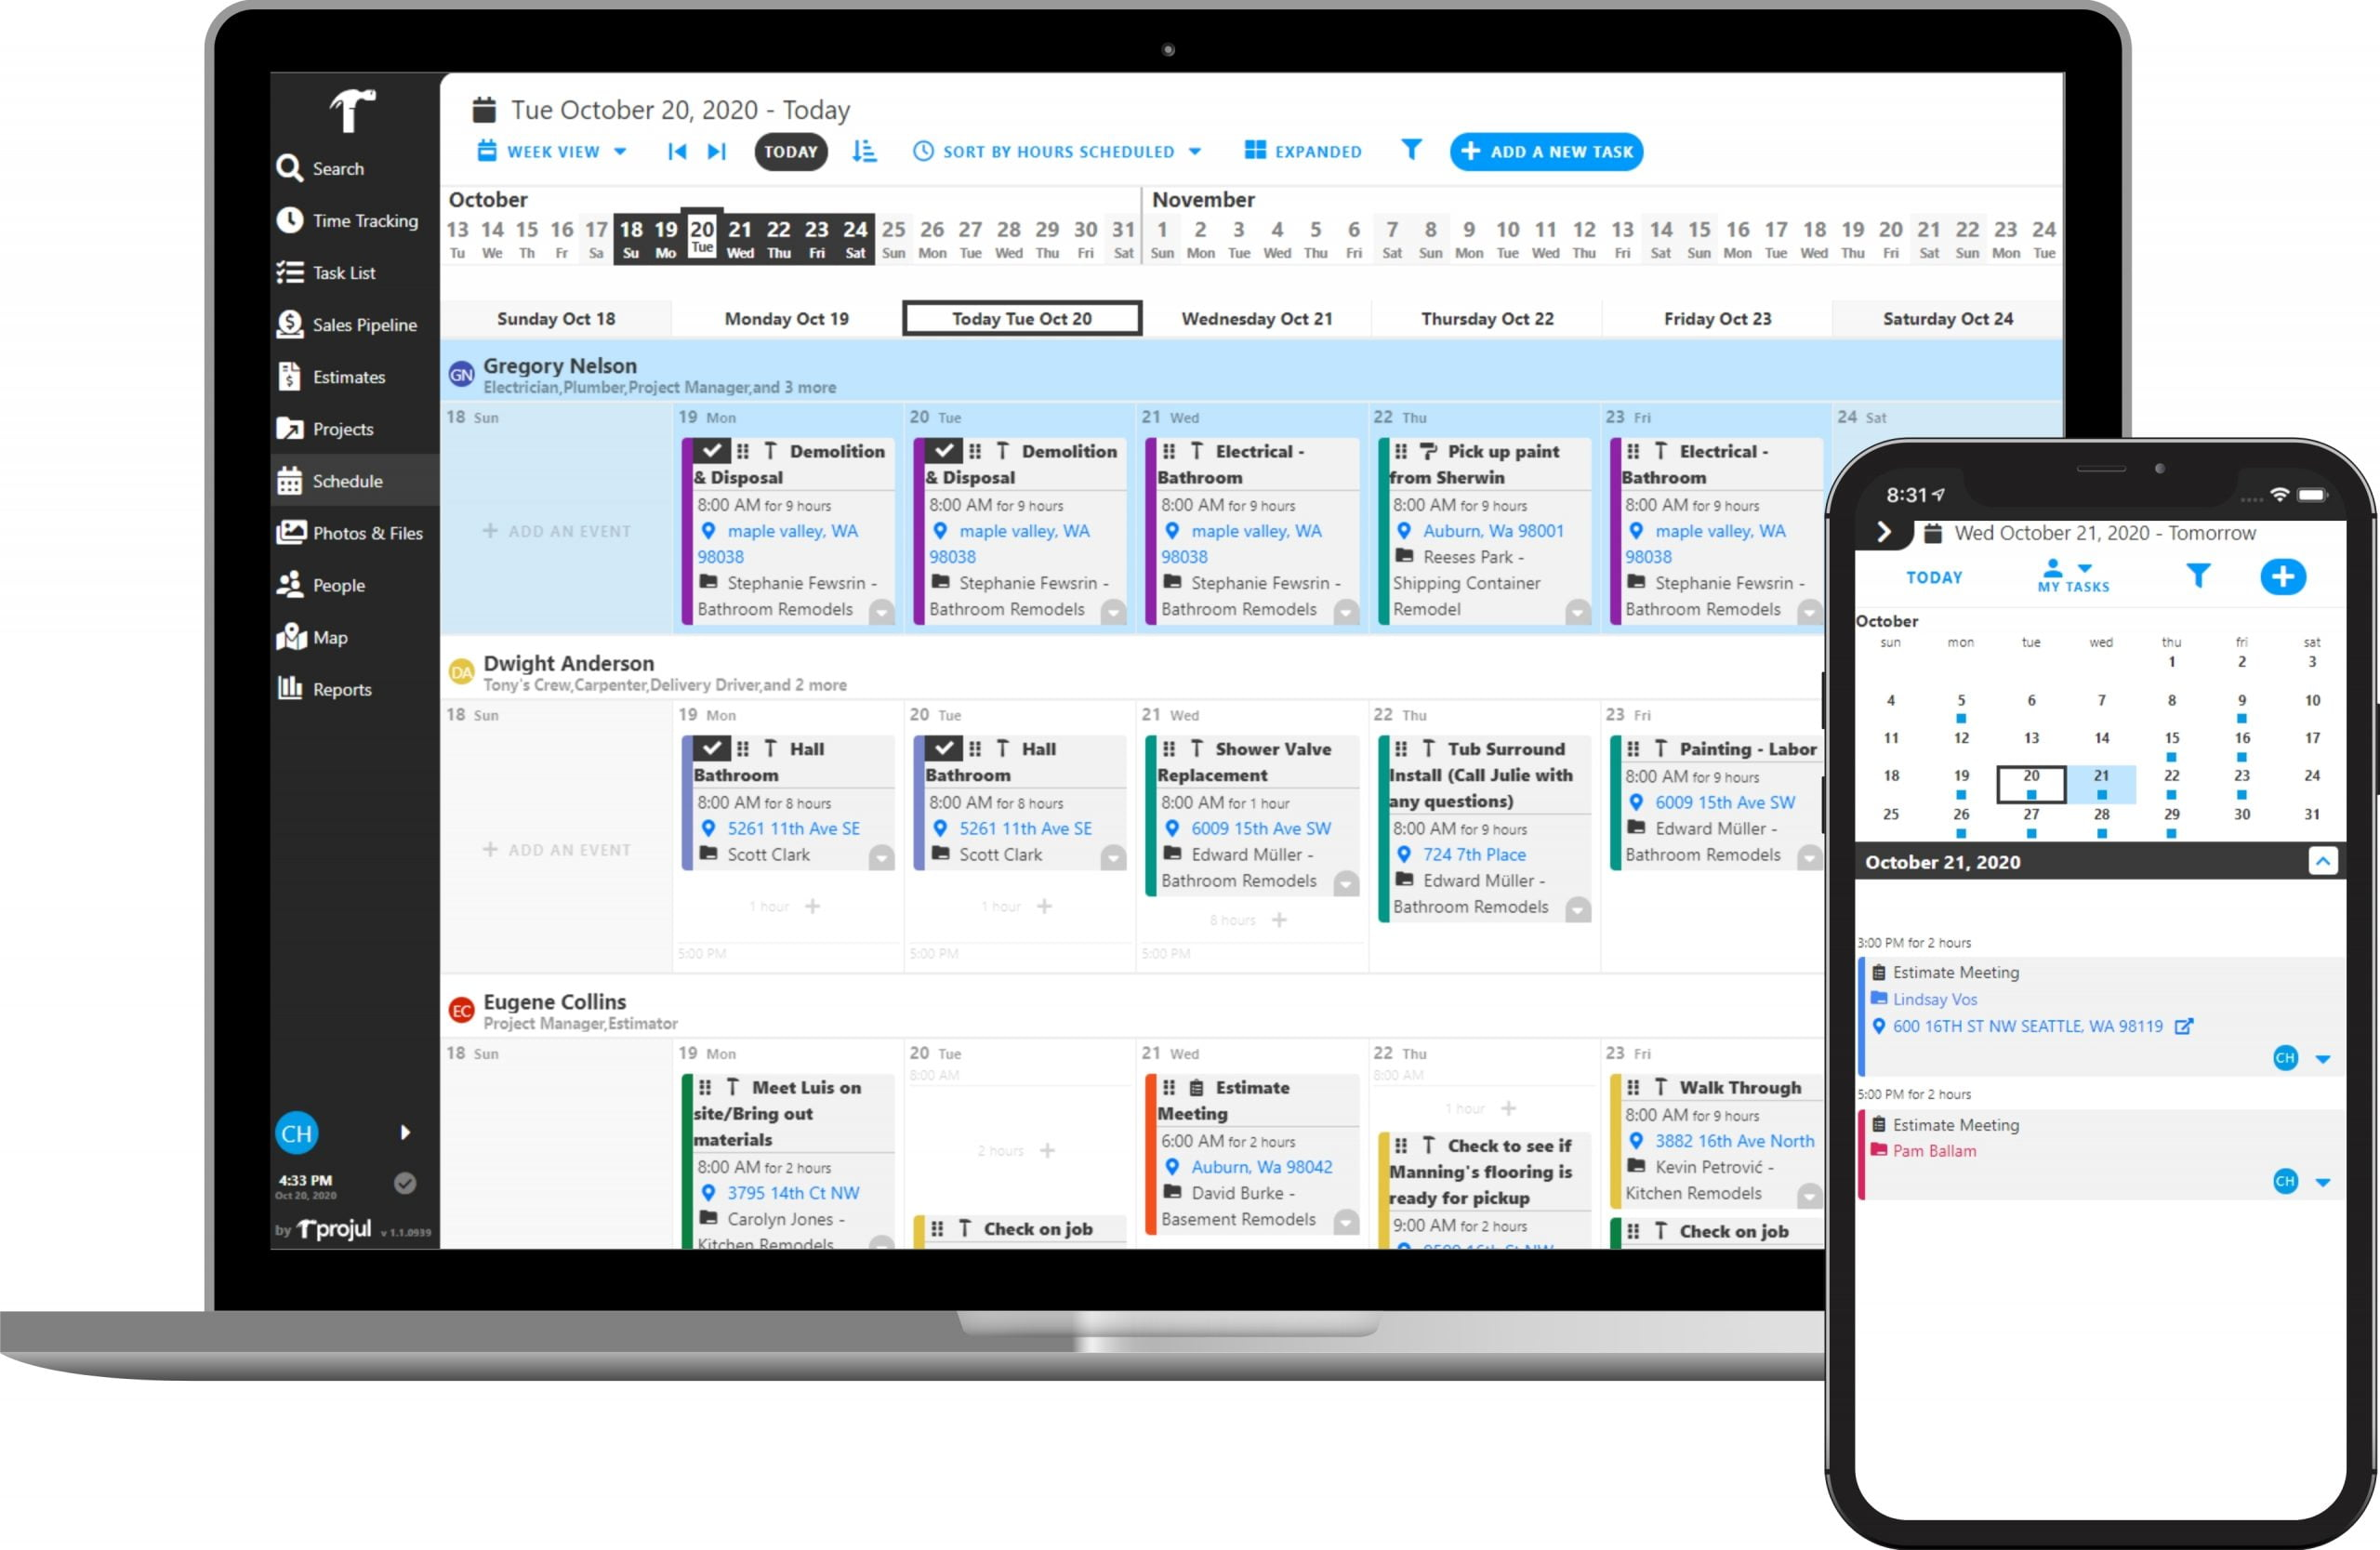 Projul Construction Management Scheduling on Desktop and Mobile